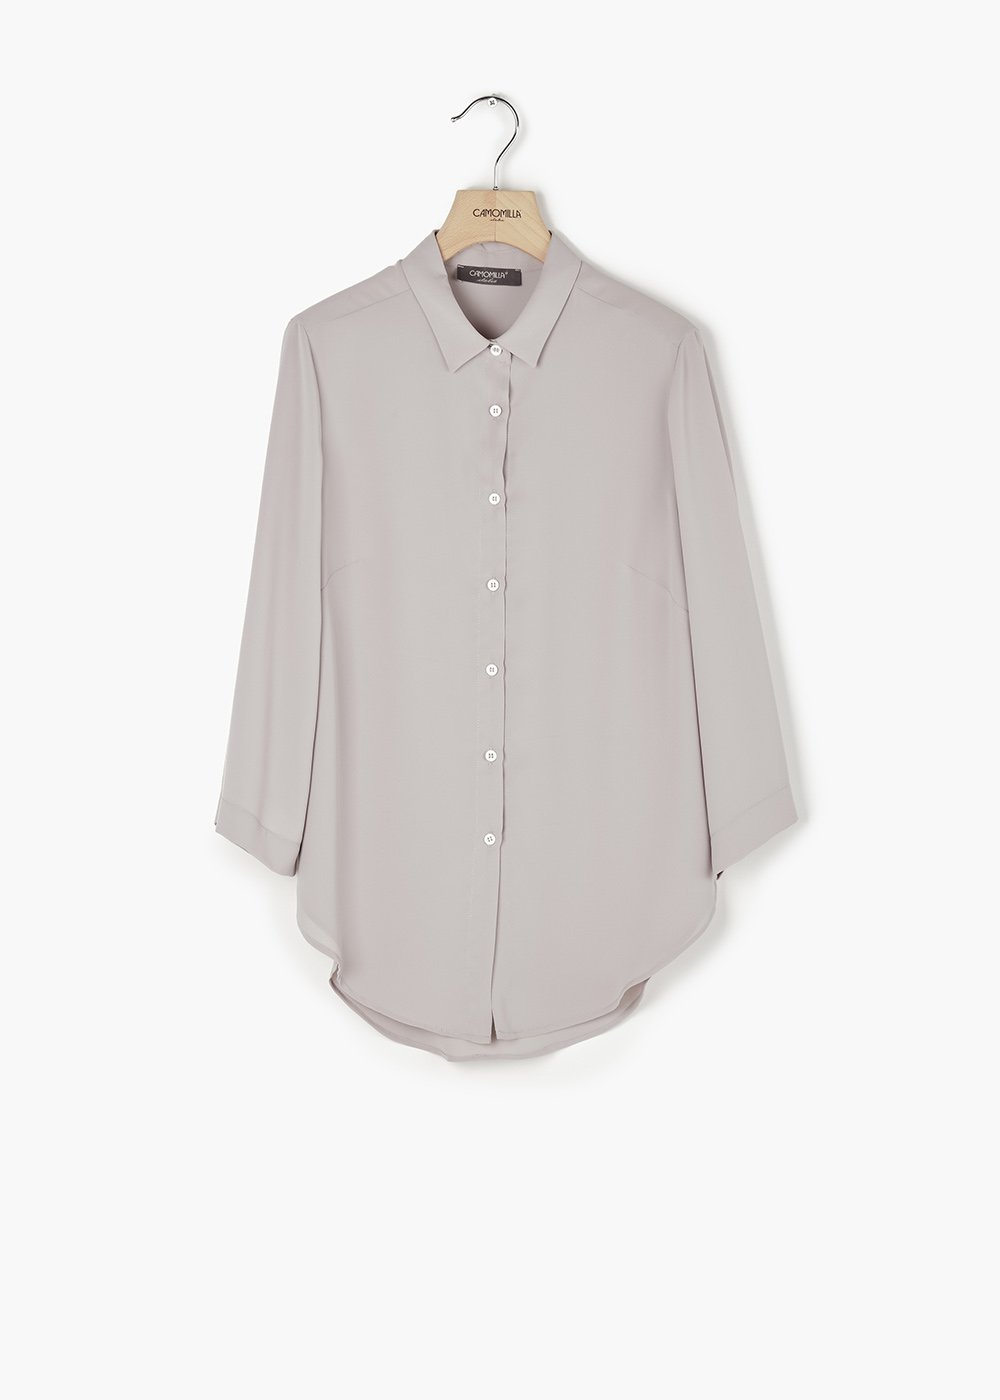 Carlotta shirt with collar and buttons - Light Grey - Woman